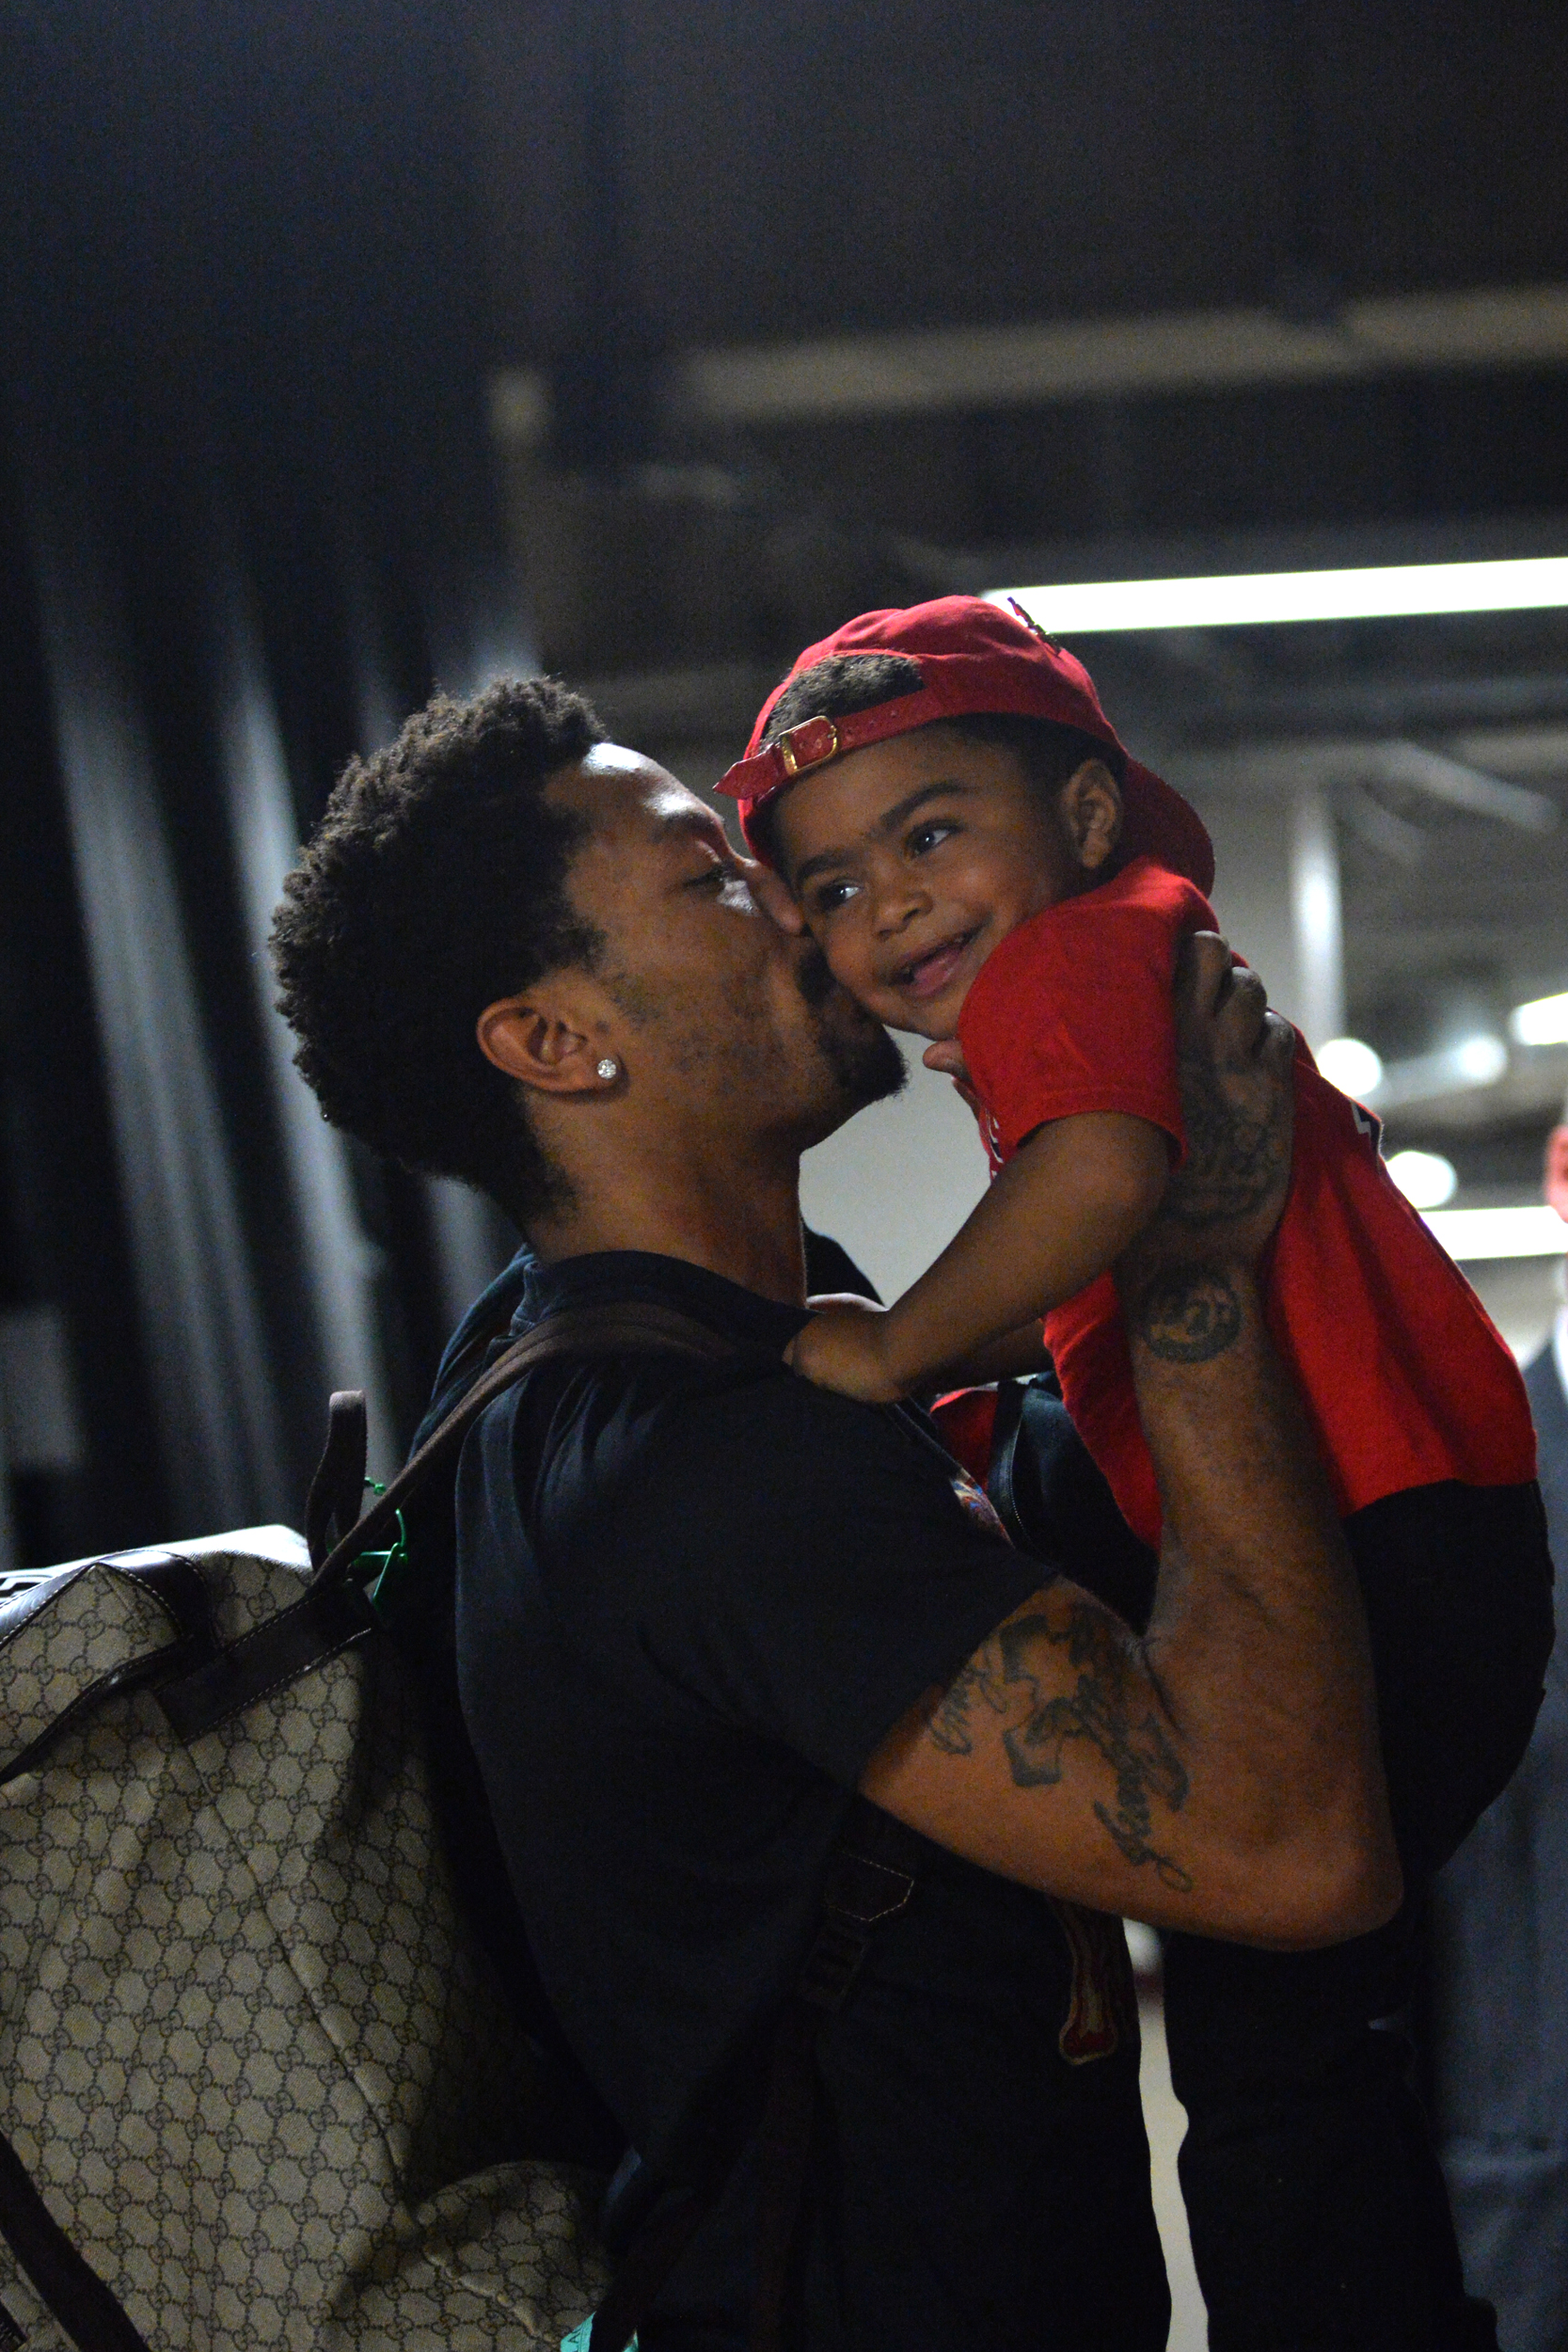 c2a94f61fc76 Derrick Rose  1 of the Chicago Bulls gives his son P.J. a kiss after  hitting the game winning shot against the Cleveland Cavaliers at the United  Center ...